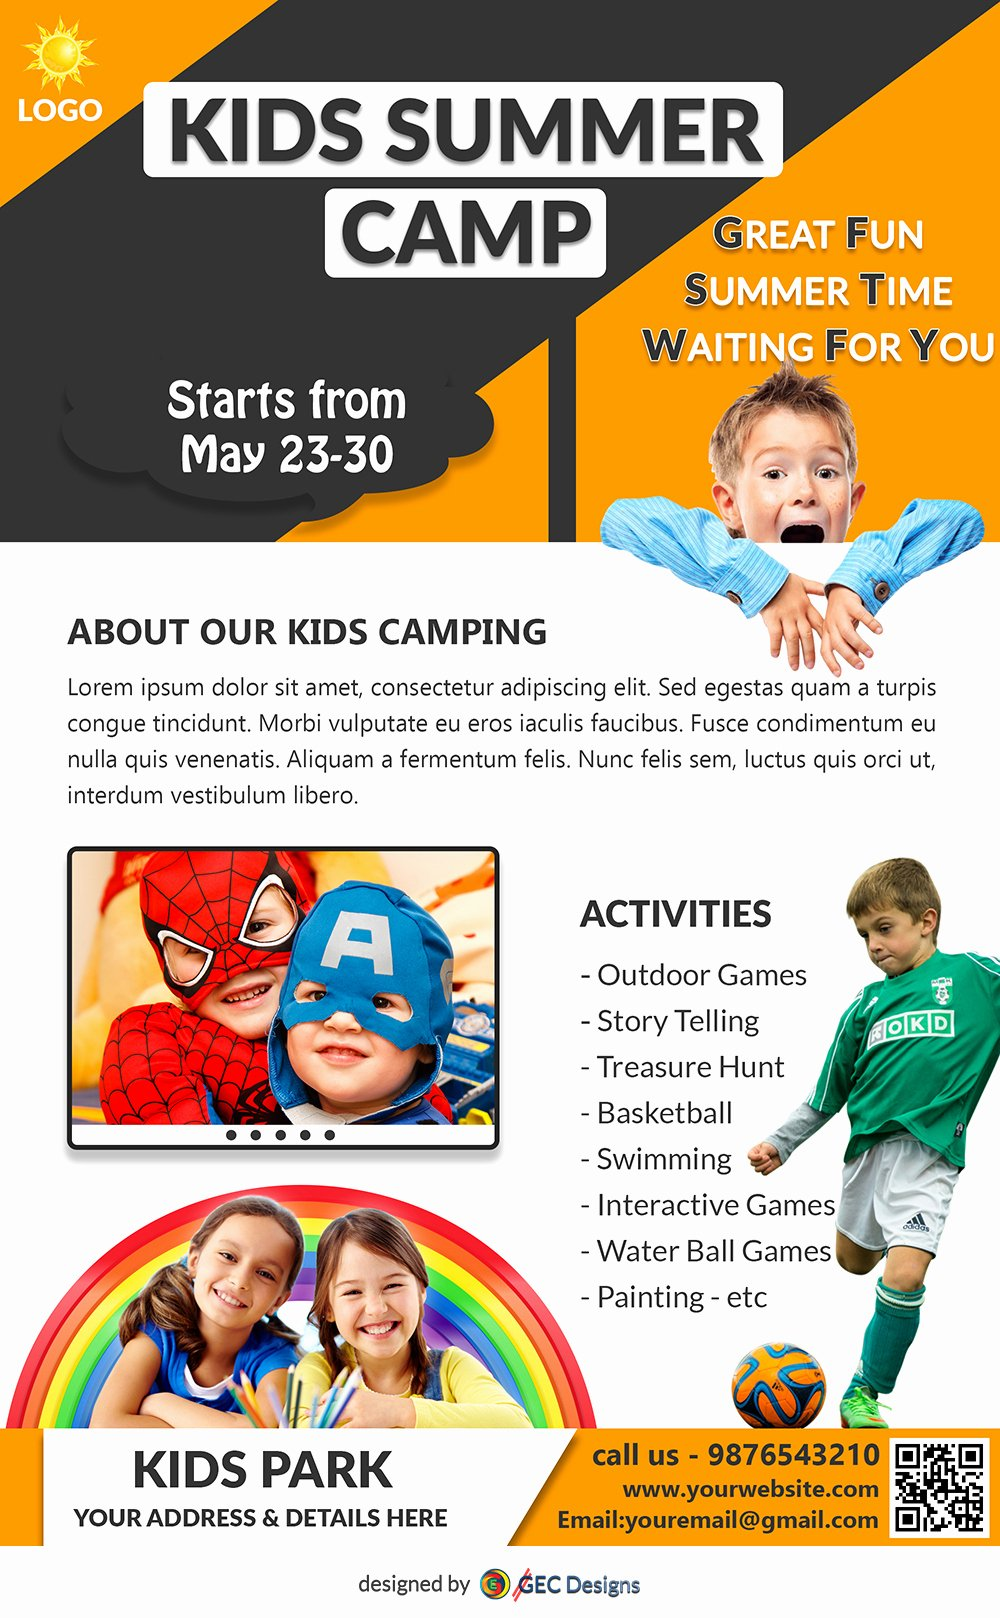 Summer Camp Flyer Template Free Fresh Download Free Sporty Fun Kids Summer Camp Flyer Design